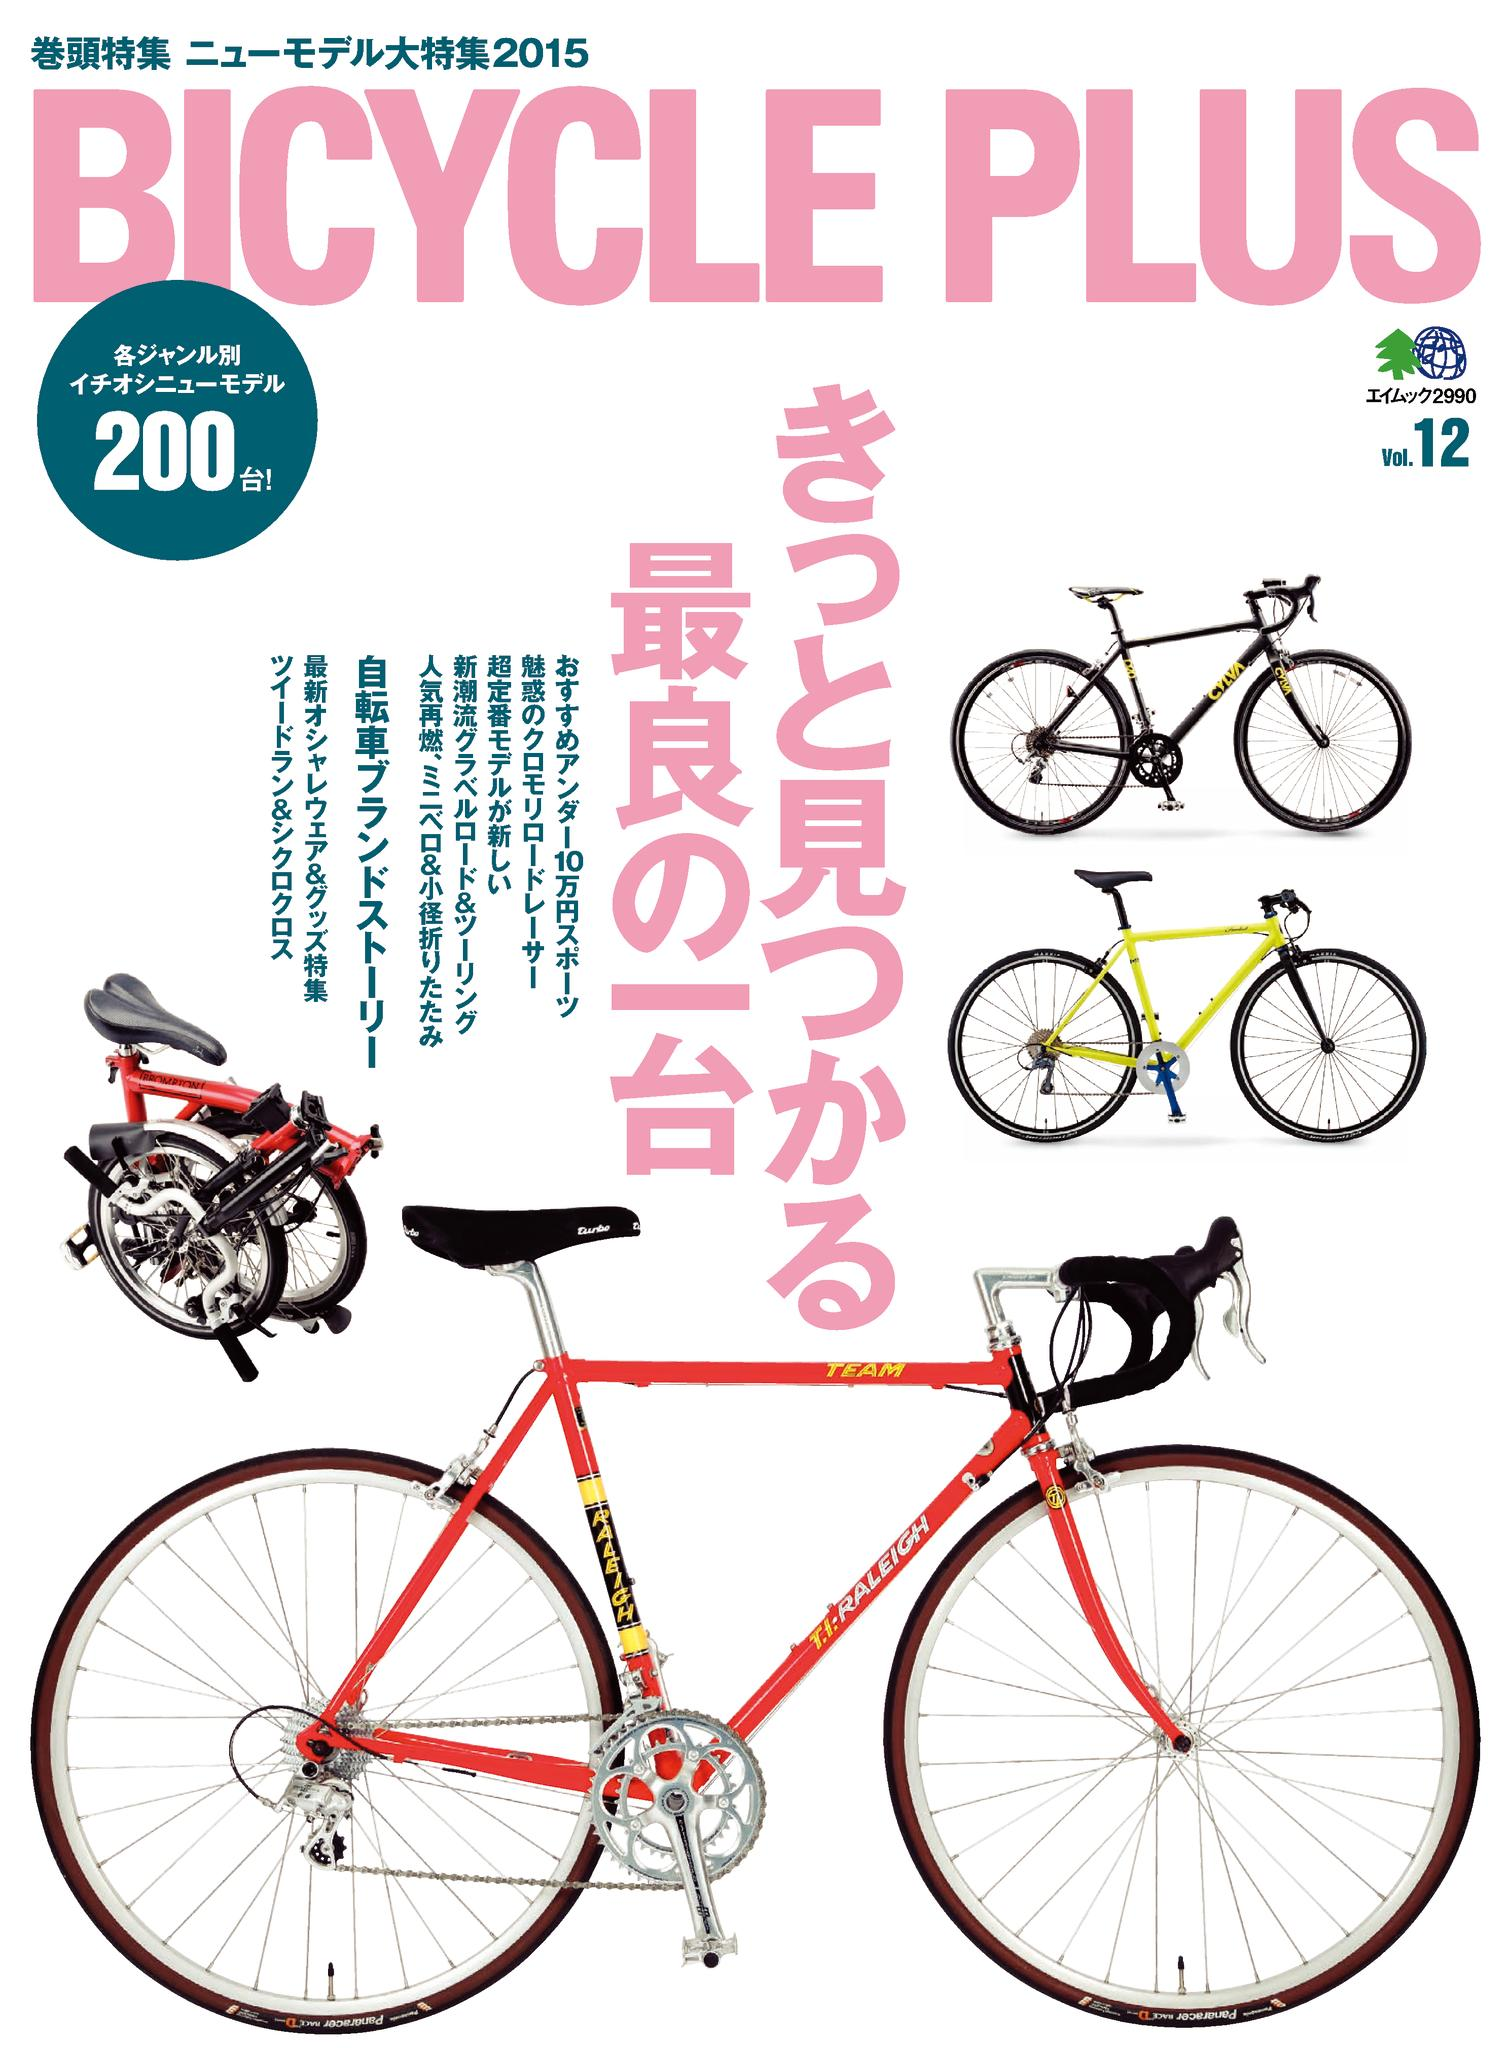 BICYCLEPLUS